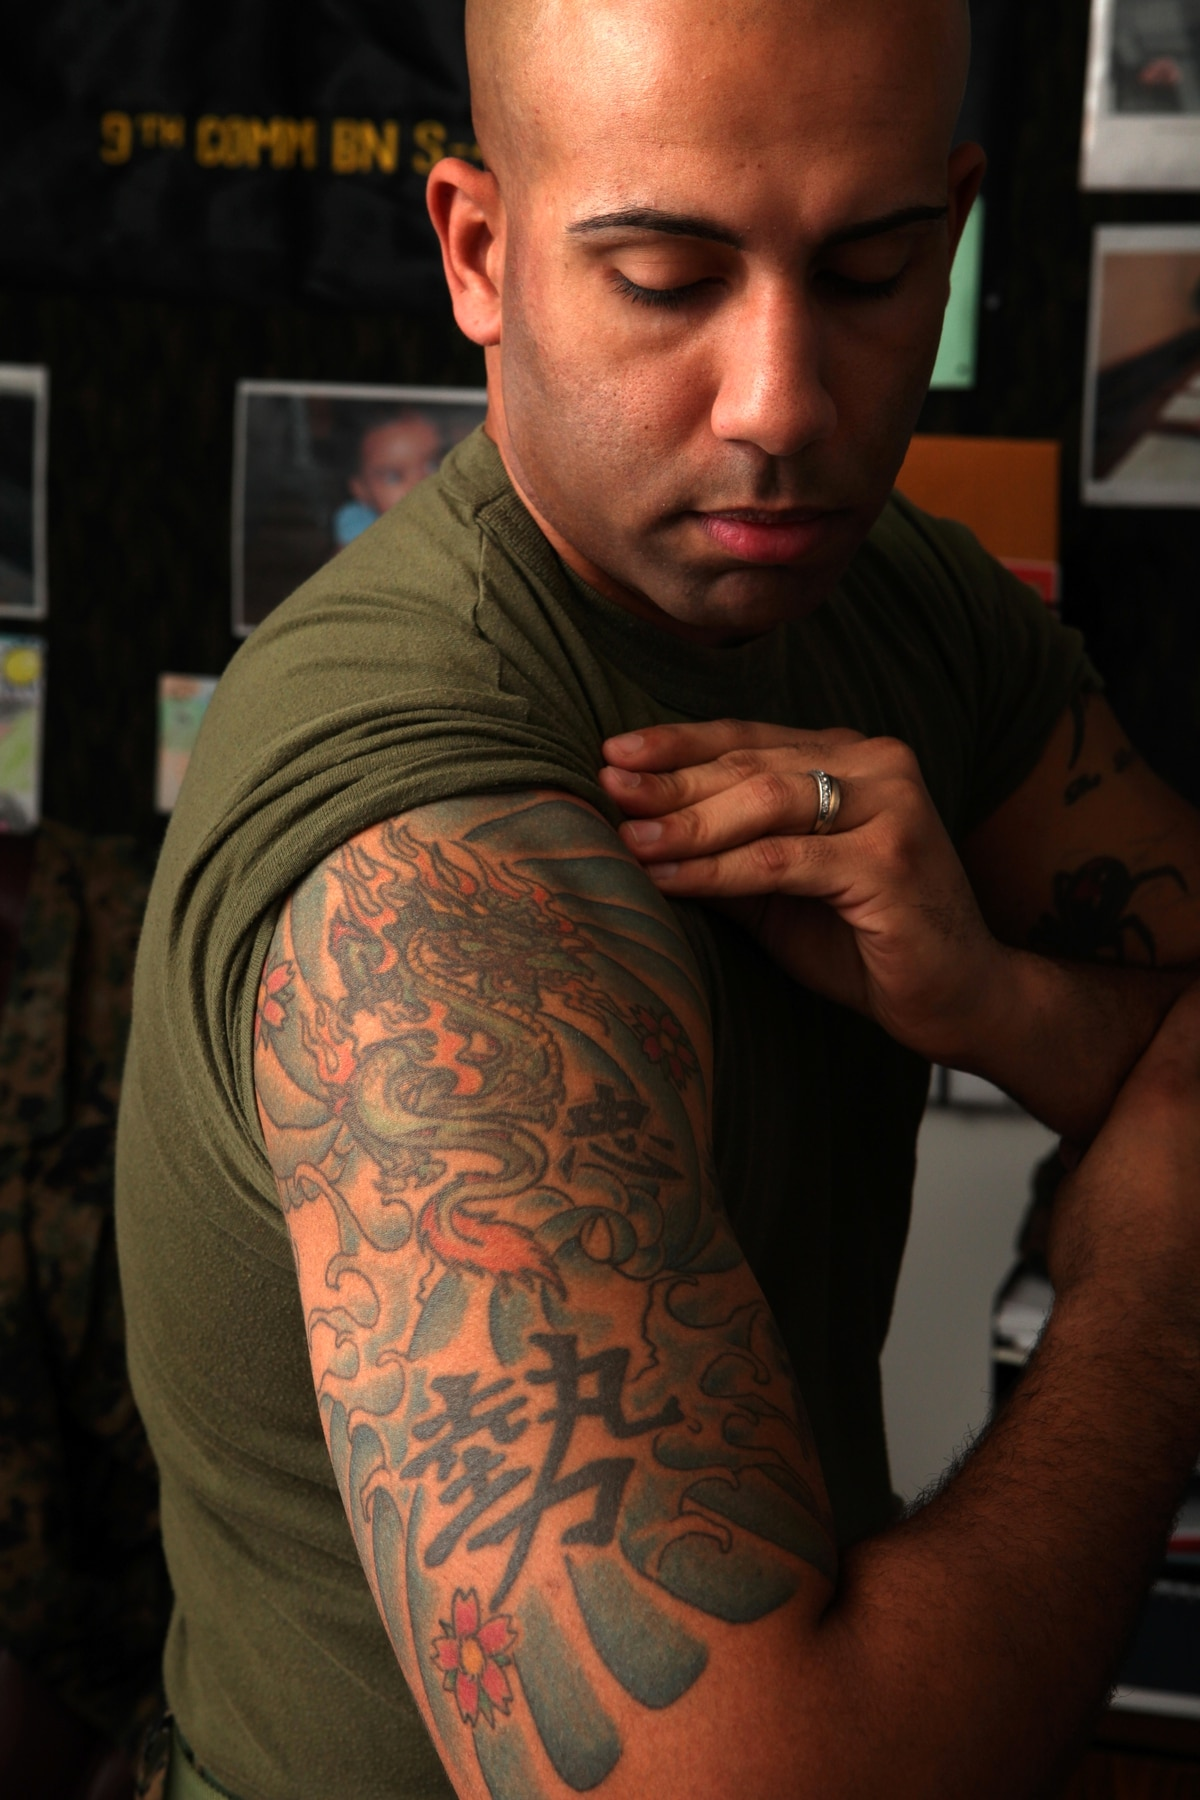 Marine corps to update its tattoo policy after review for Army officer tattoo policy